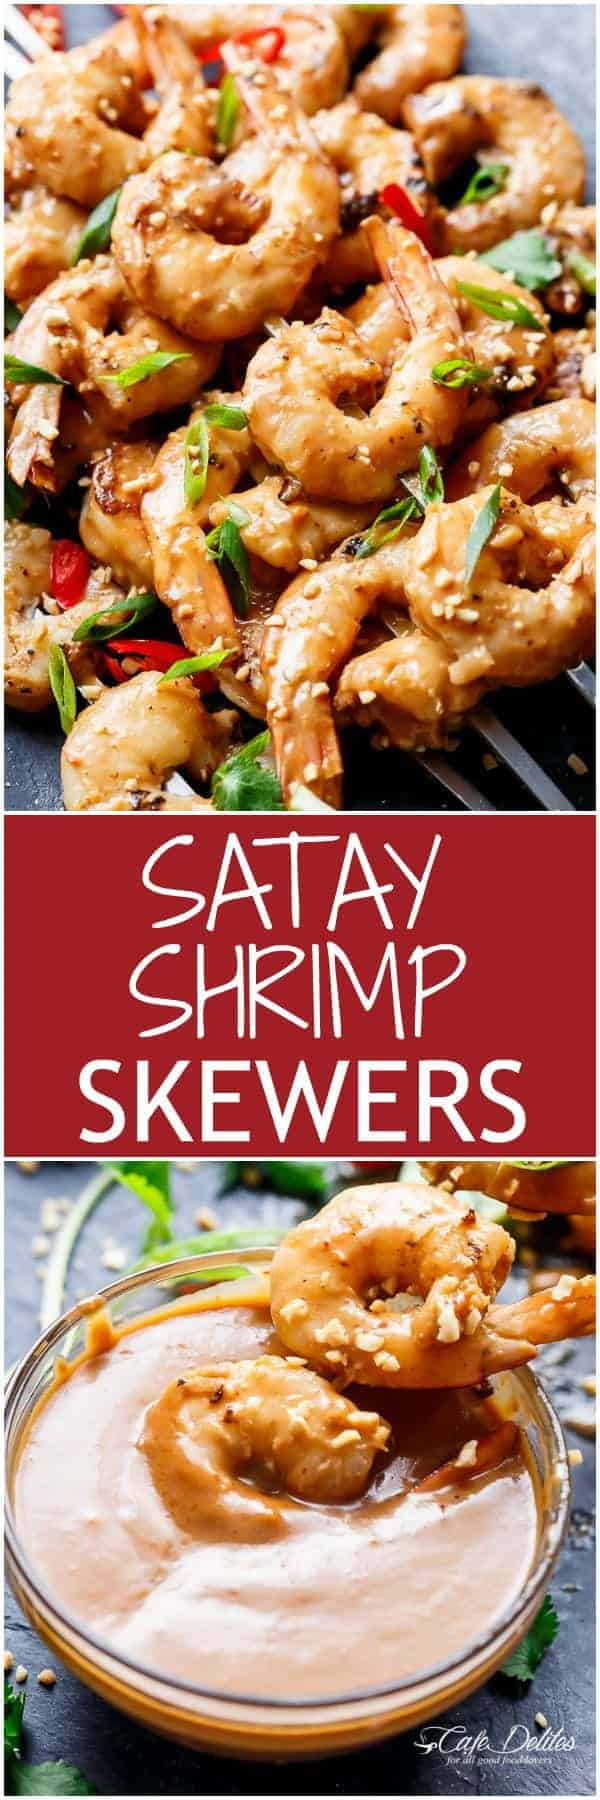 Easy grilled Satay Shrimp Skewers smothered in the BEST 10 minute Thai-style peanut sauce with minimal effort and maximum taste! | http://cafedelites.com